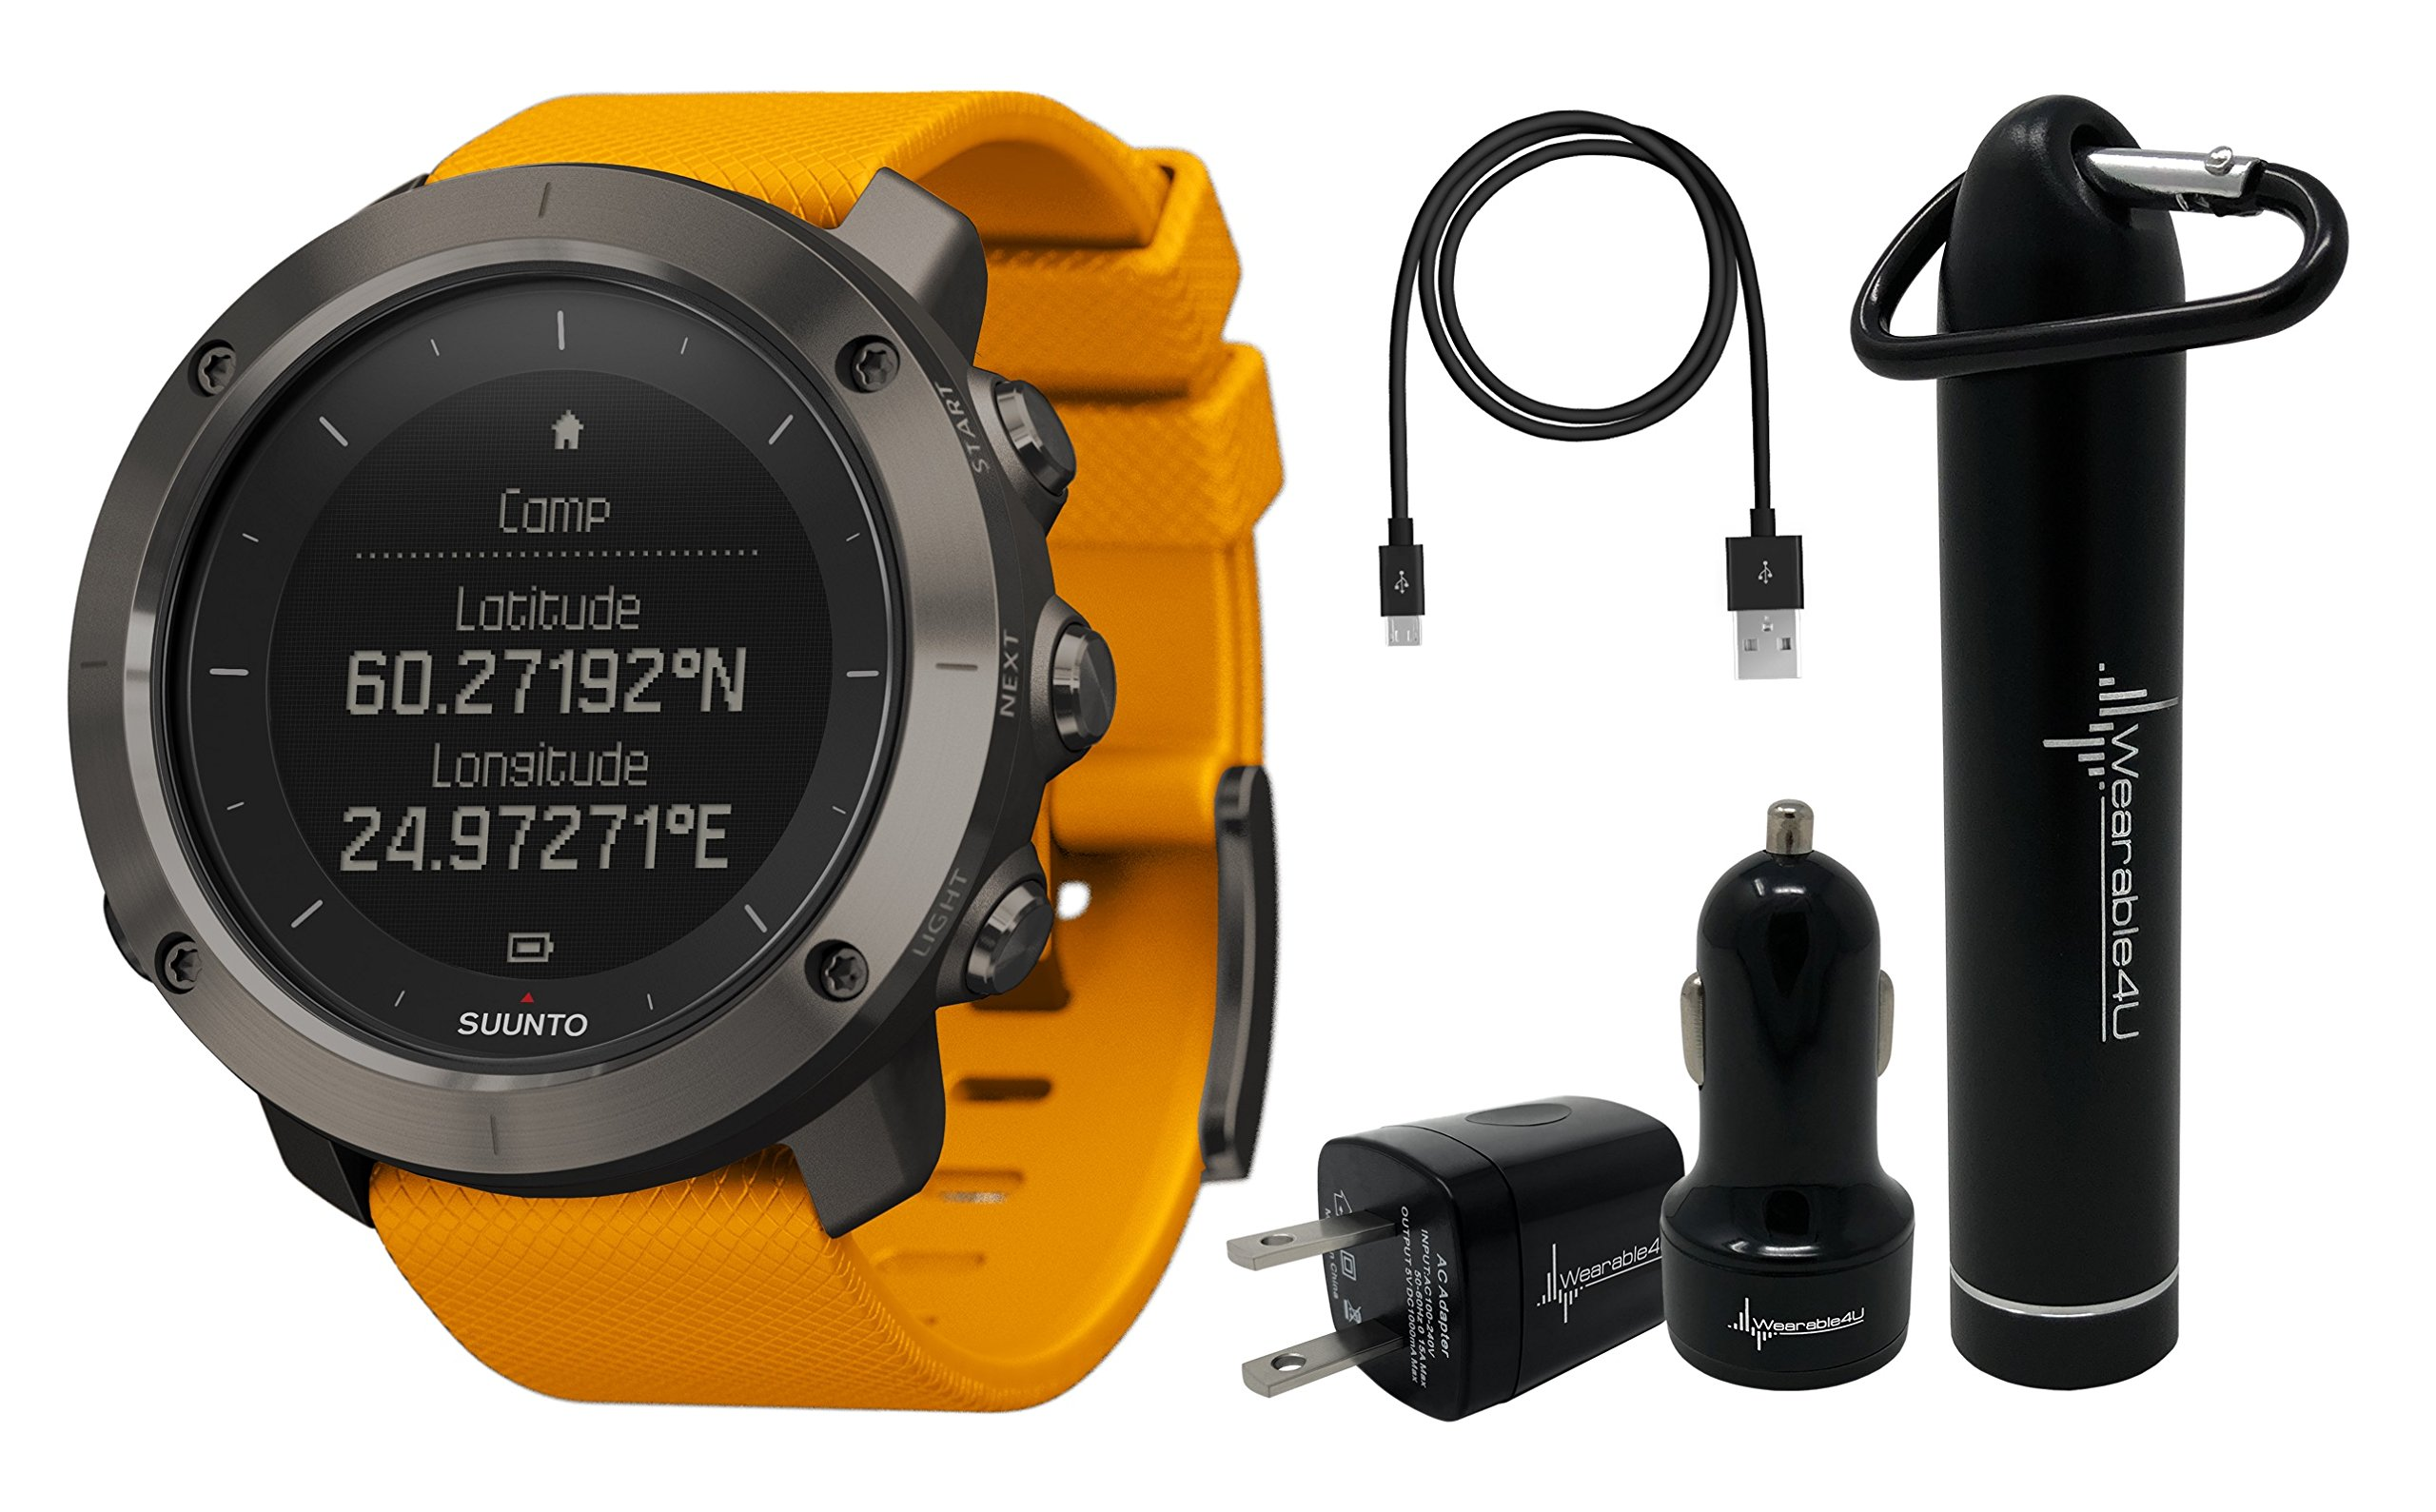 Suunto Traverse GPS Outdoor Hiking Watch with Versatile Navigation Functions and Wearable4U Ultimate Power Pack Bundle (Amber)